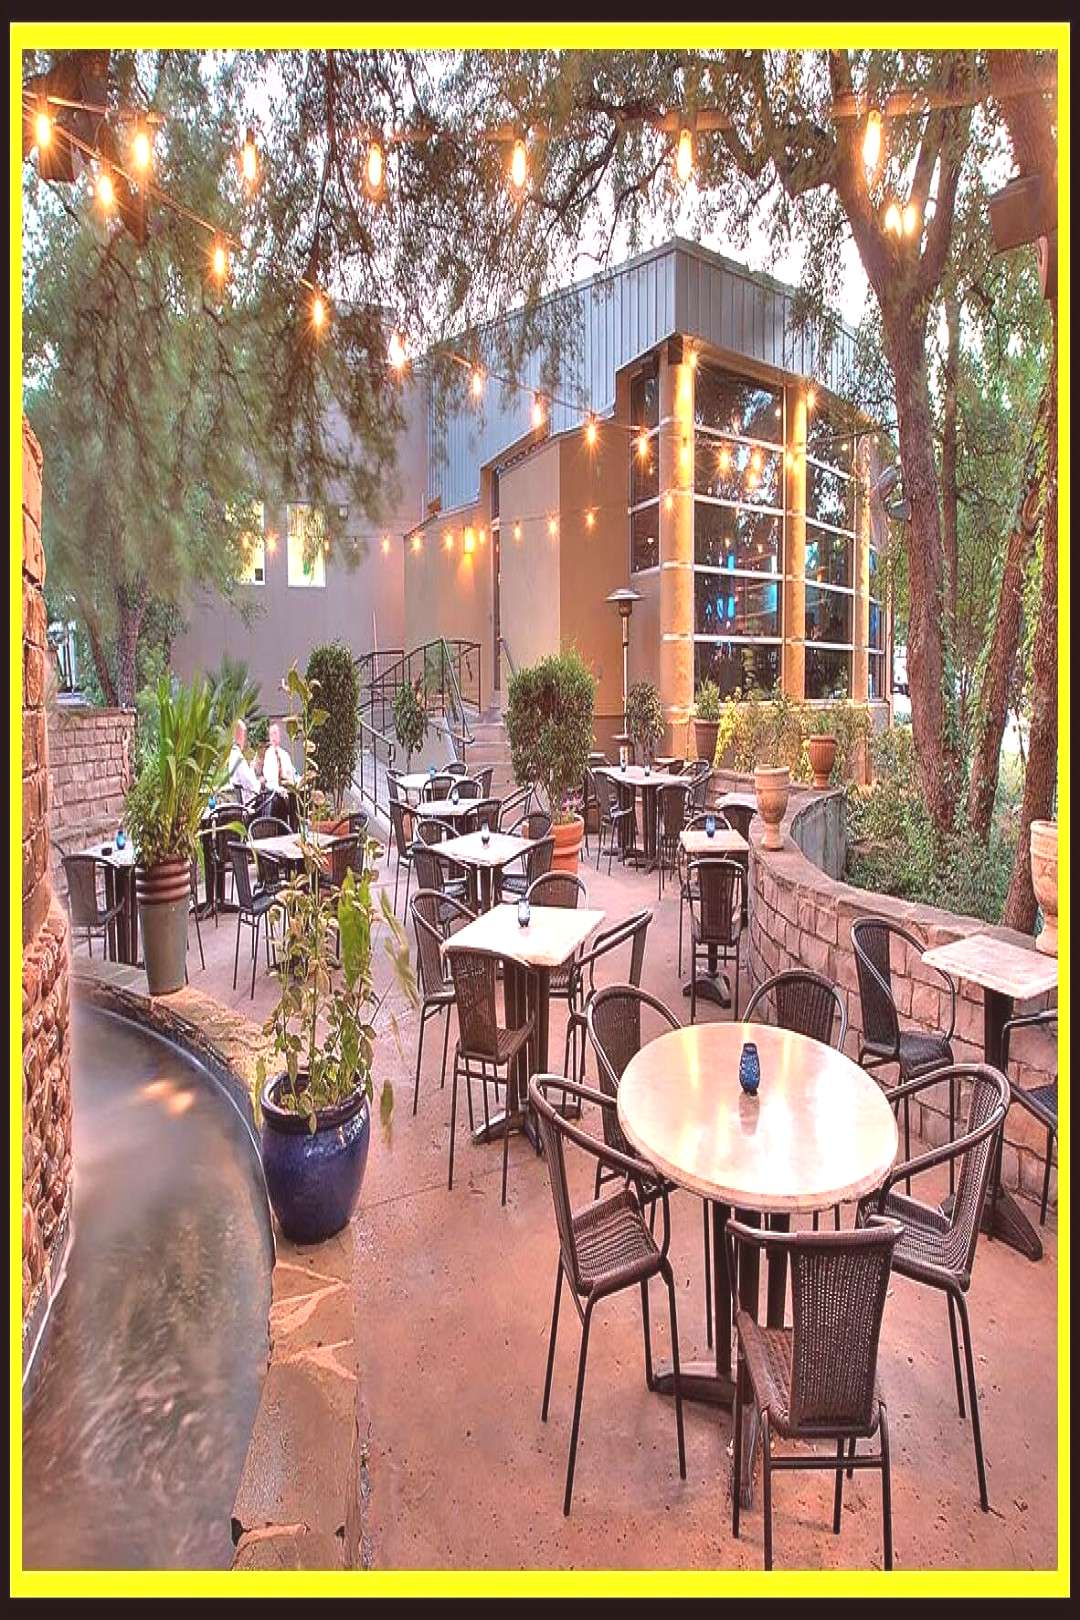 86 reference of outdoor patio restaurants san diego outdoor patio restaurants san diego-#outdoor Pl